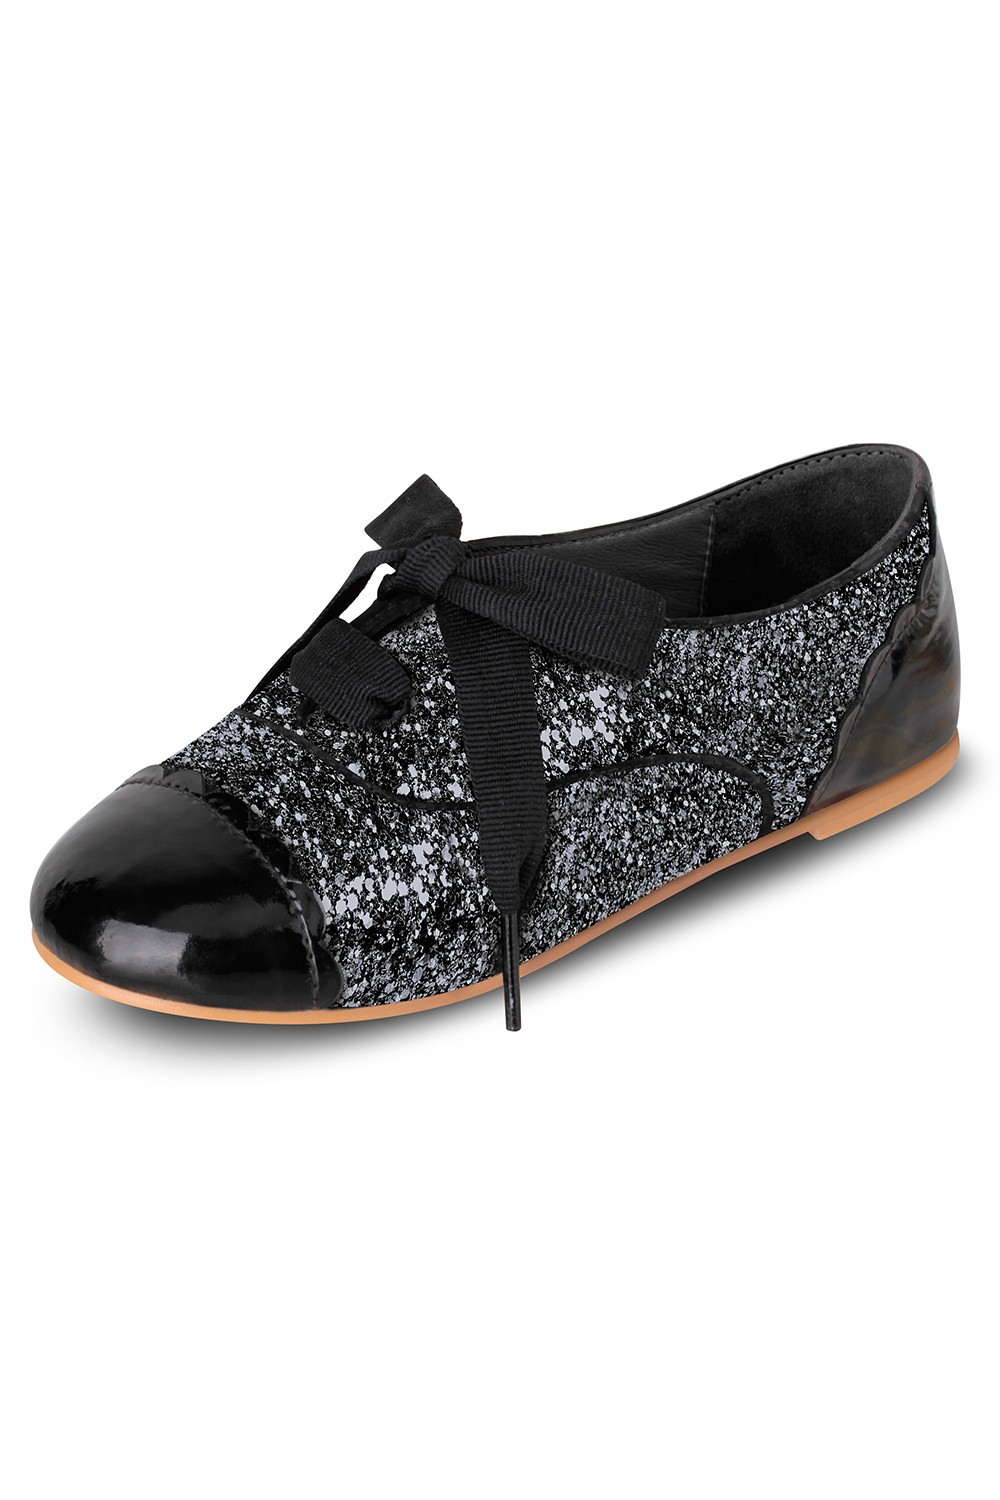 Aubrey Girls Fashion Shoes